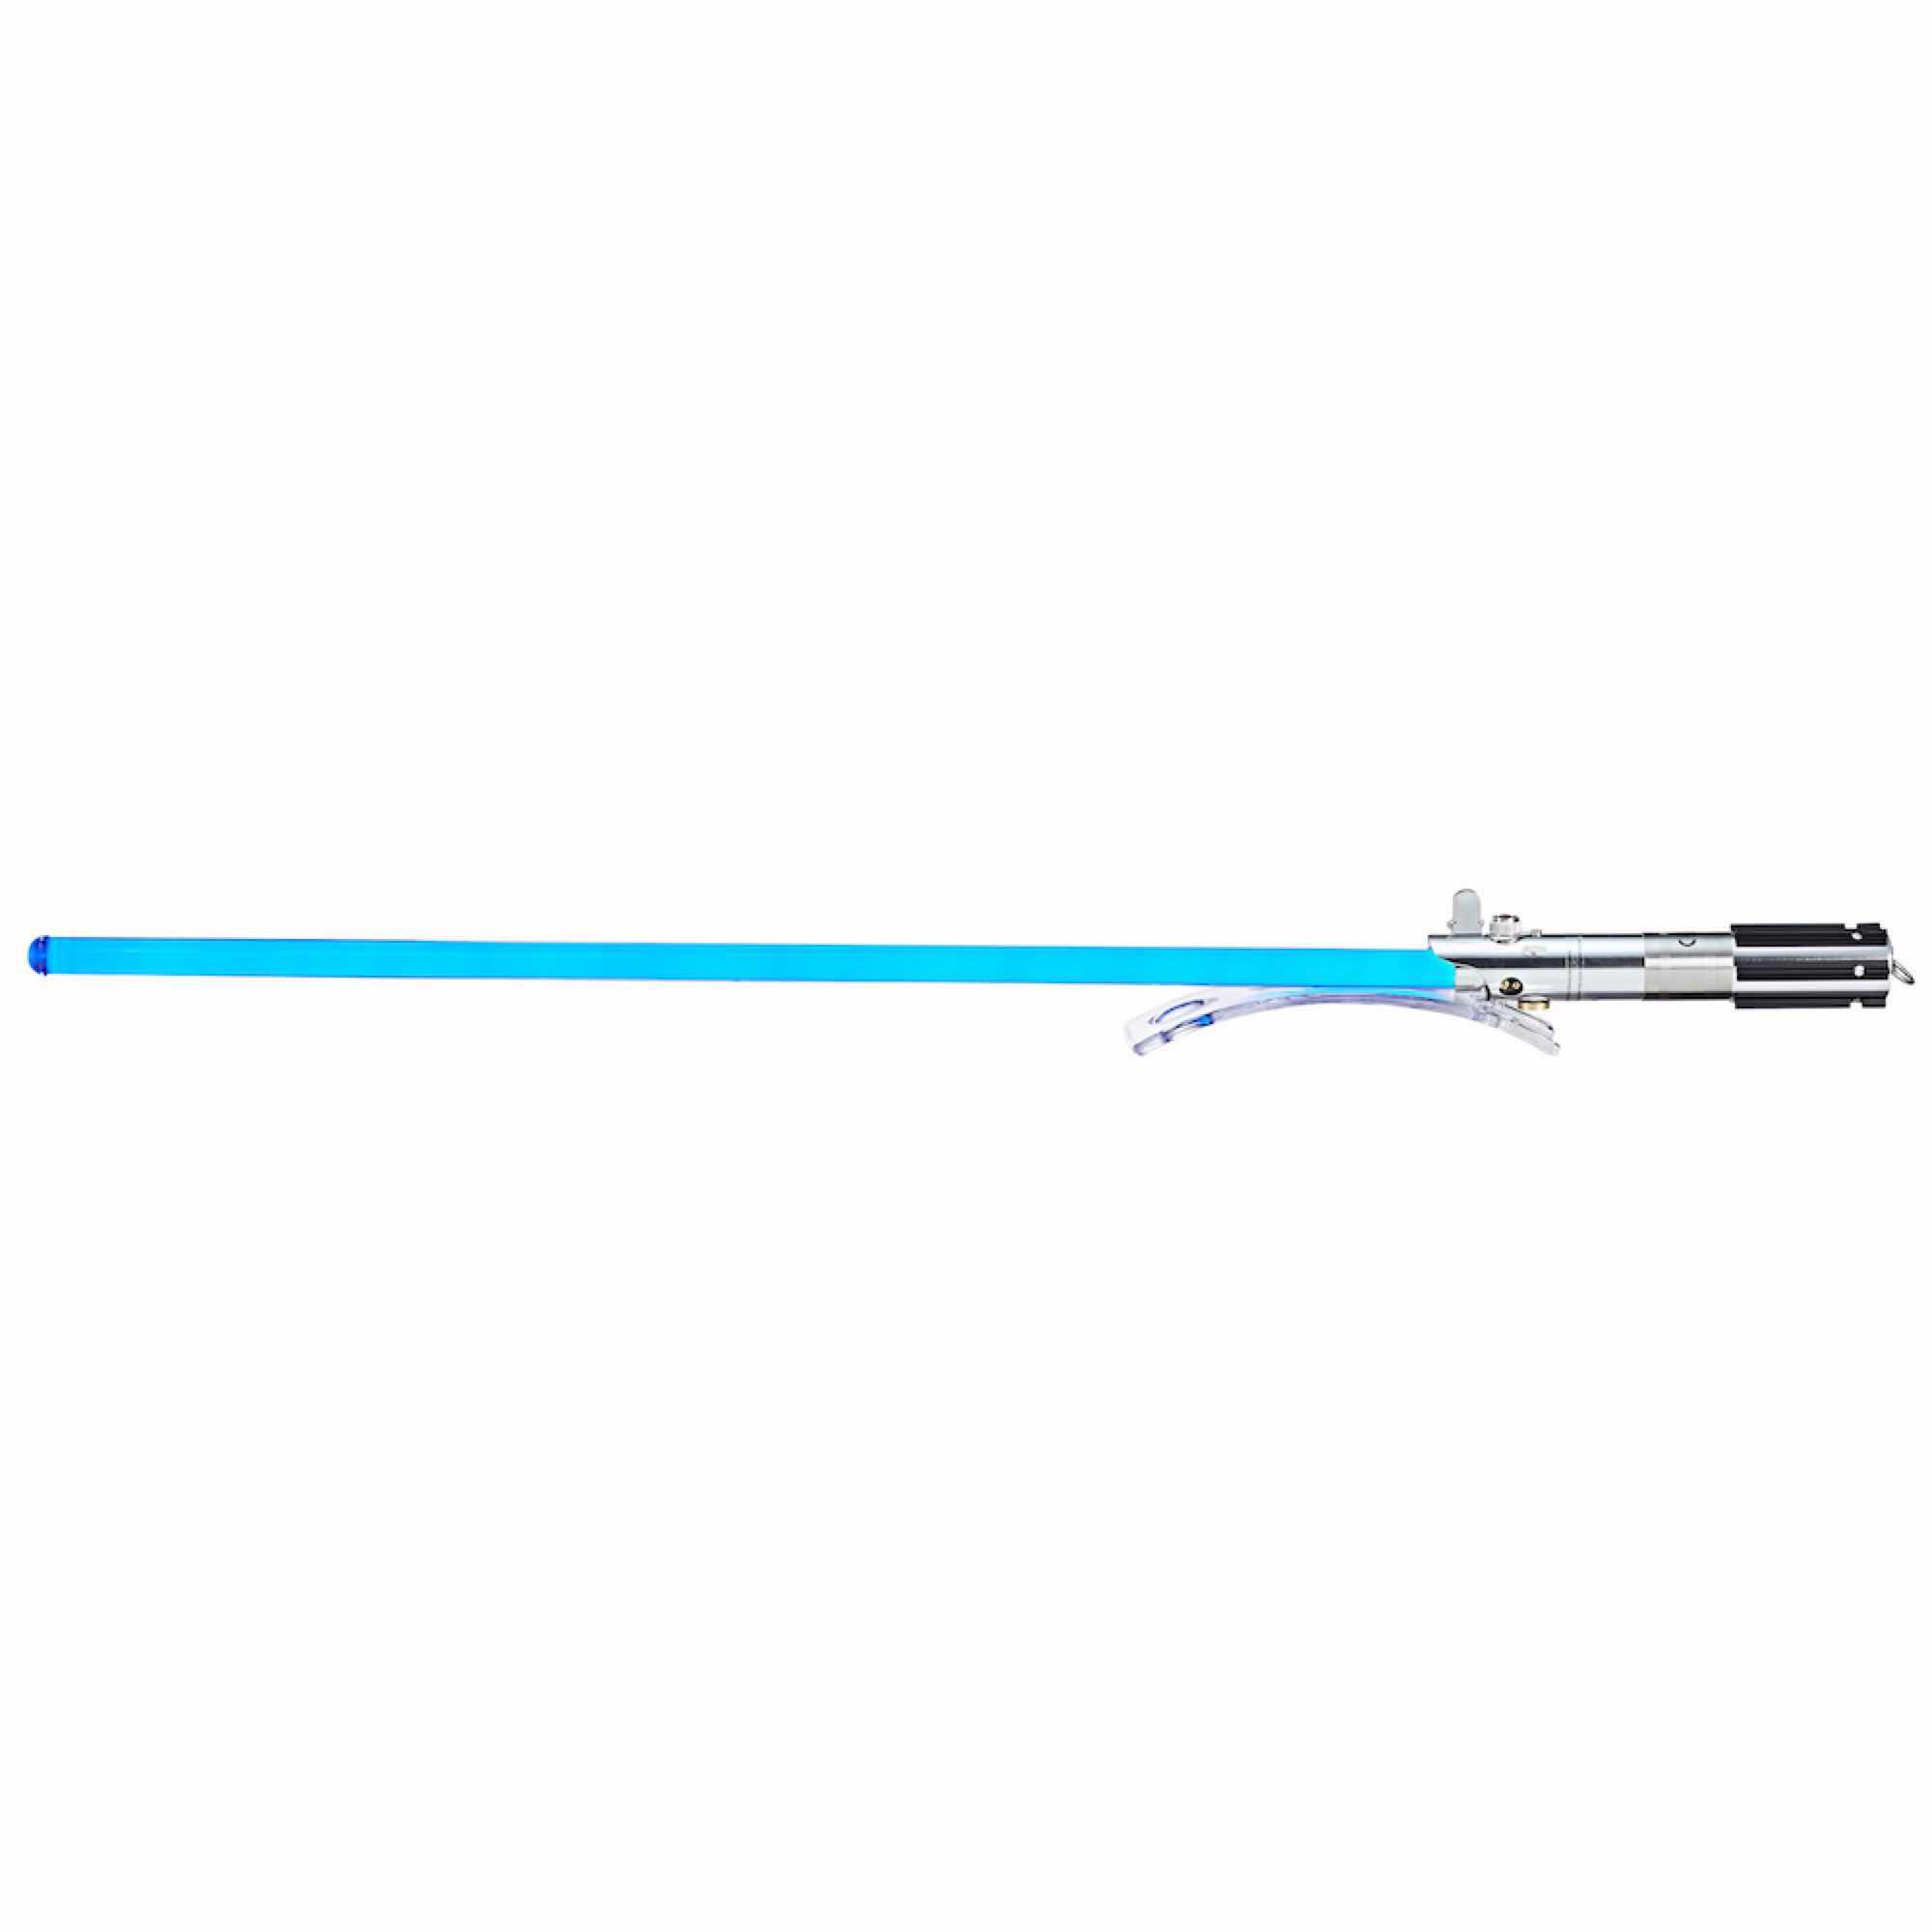 REY EP 8 FORCE FX LIGHTSABER REPLICA STAR WARS